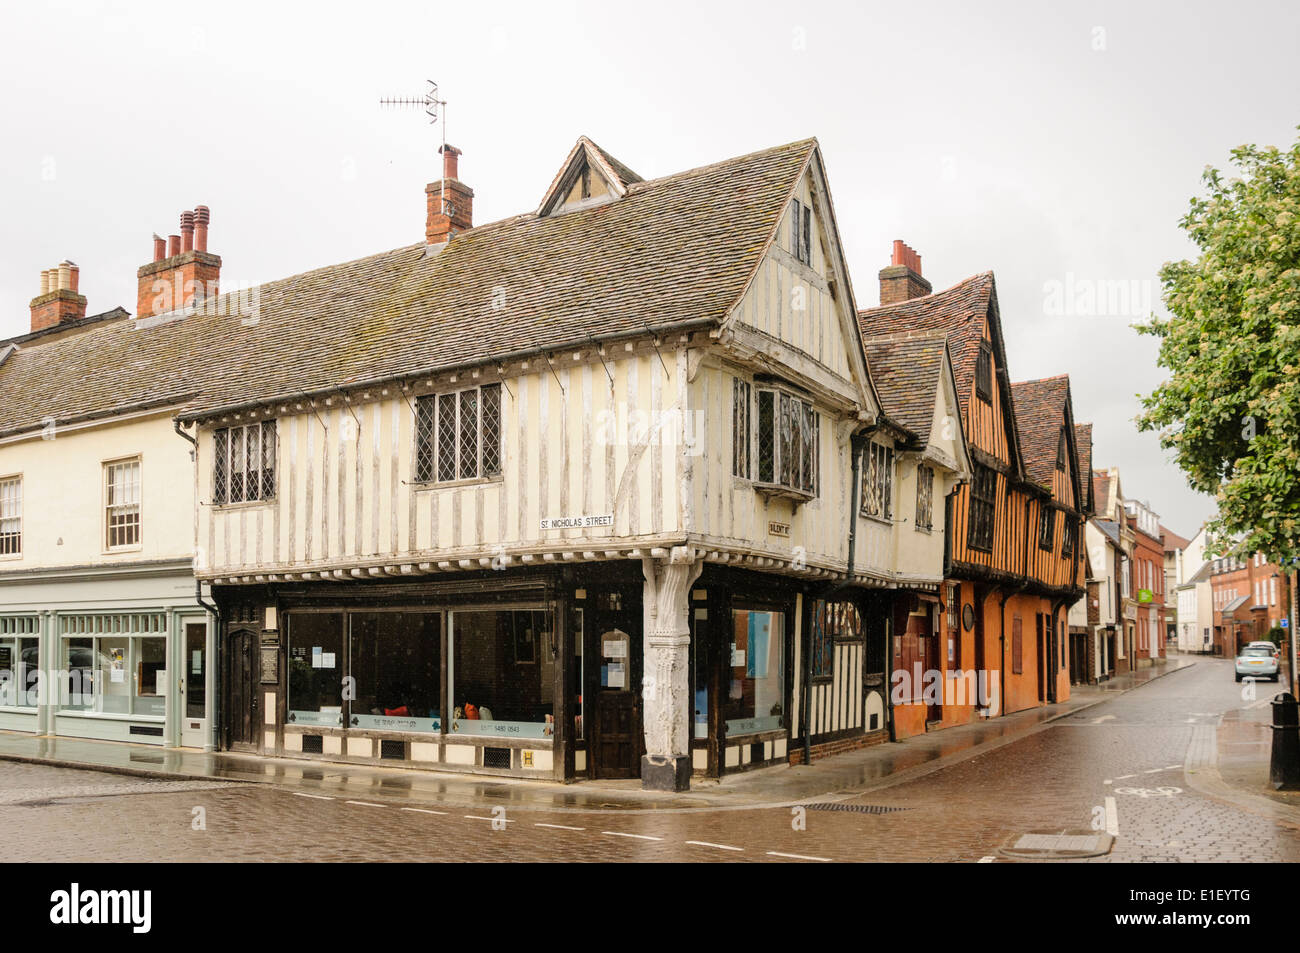 An old Tudor building in Ipswich - Stock Image